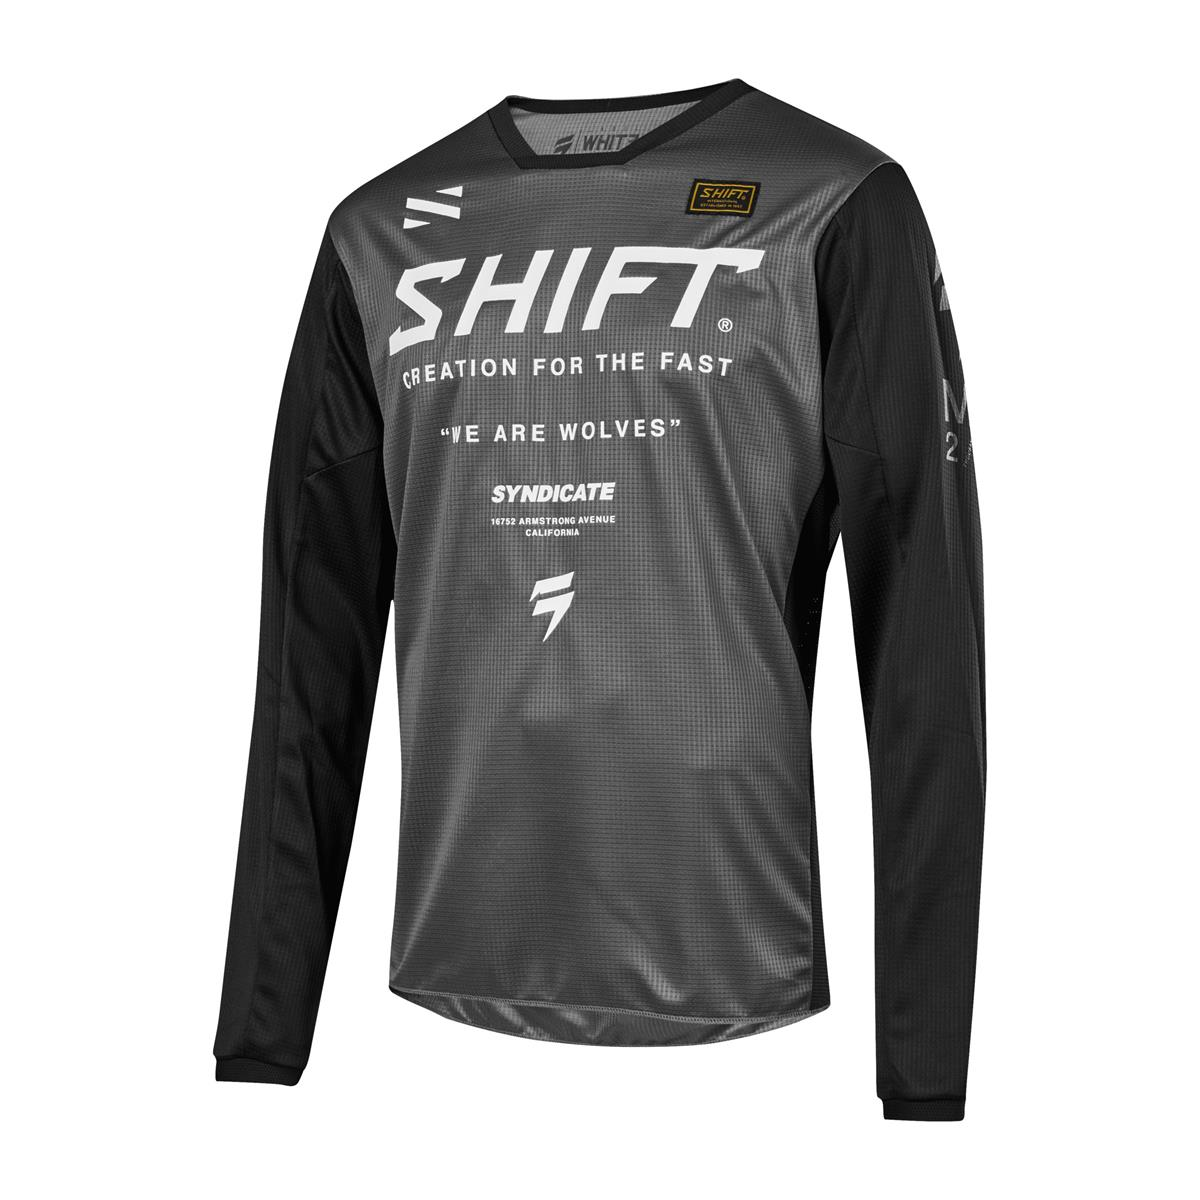 Shift Kids Jersey Whit3 Label Muse Smoke 2019 | Maciag Offroad